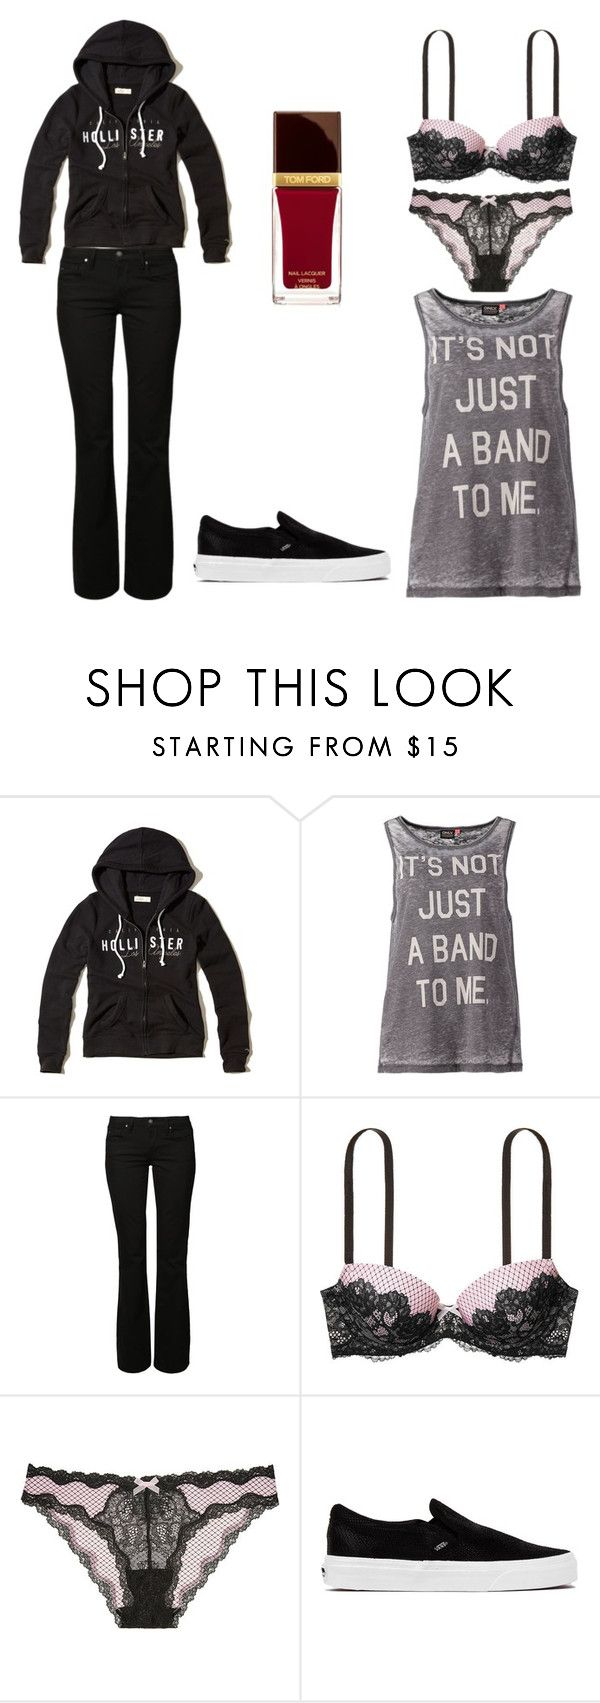 """""""Untitled 5215"""" by rosamariagonzales ❤ liked on Polyvore featuring Hollister Co., ONLY, Mavi, Victoria's Secret, Vans and Tom Ford"""